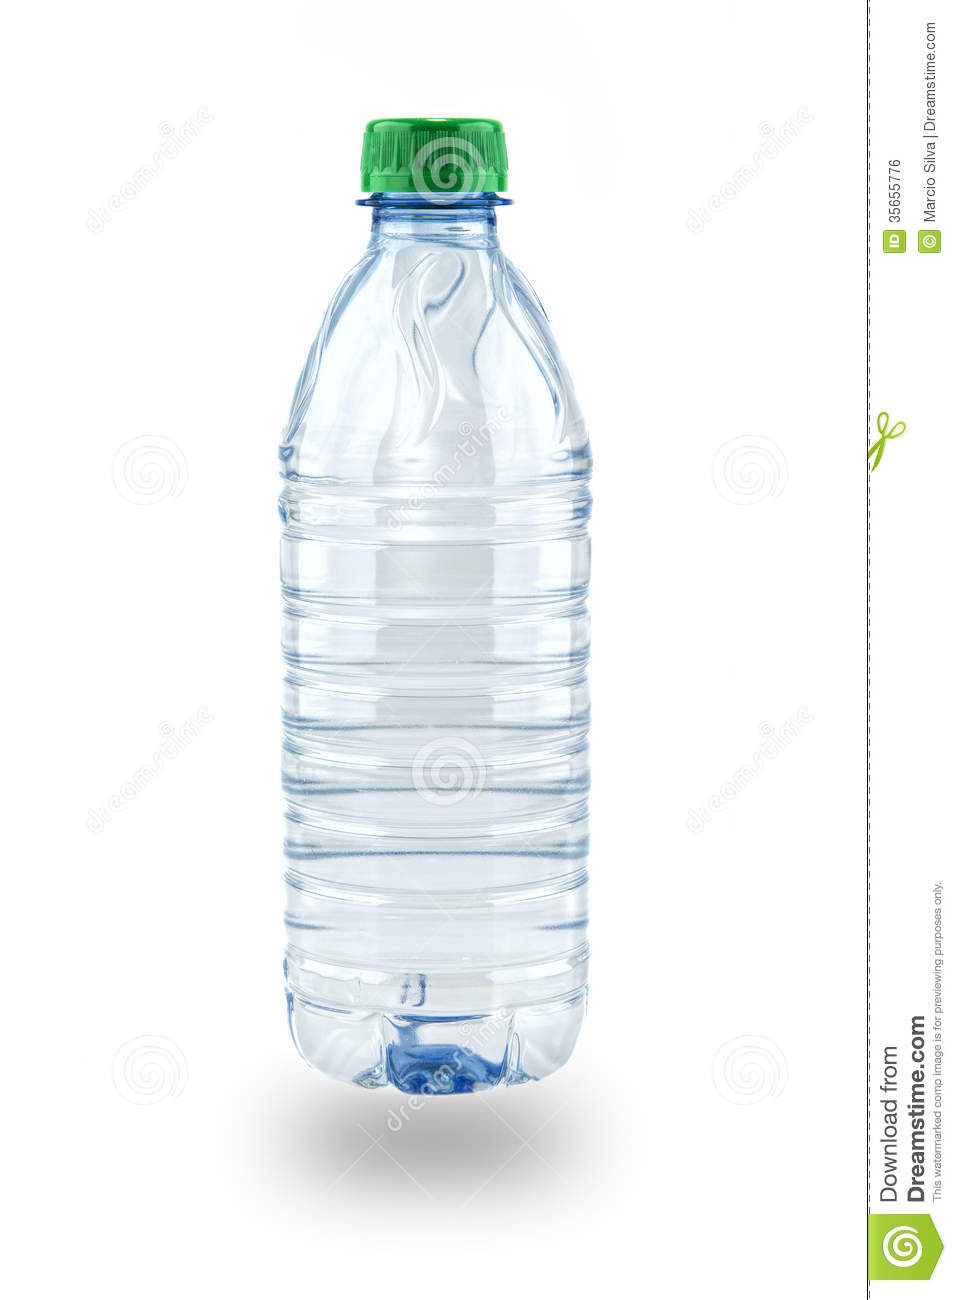 Mineral Water Royalty Free Stock Image - Image: 35655776